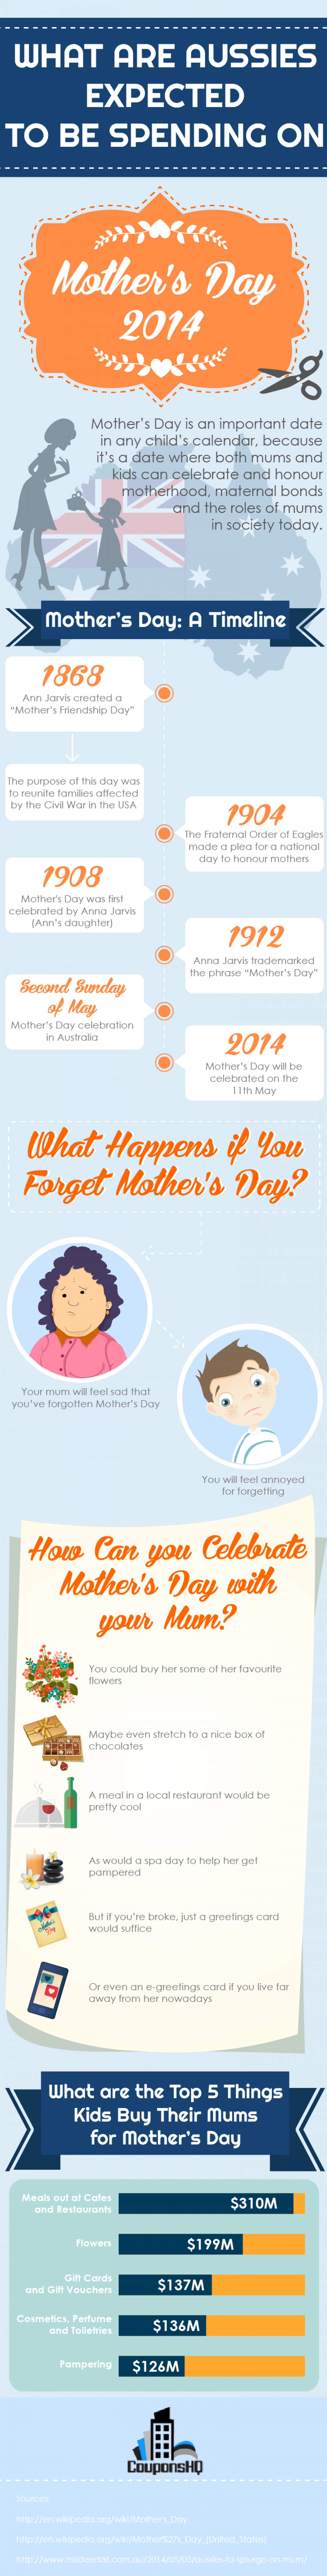 What Are Aussies Expected to be Spending on Mother's Day 2014 Infographic